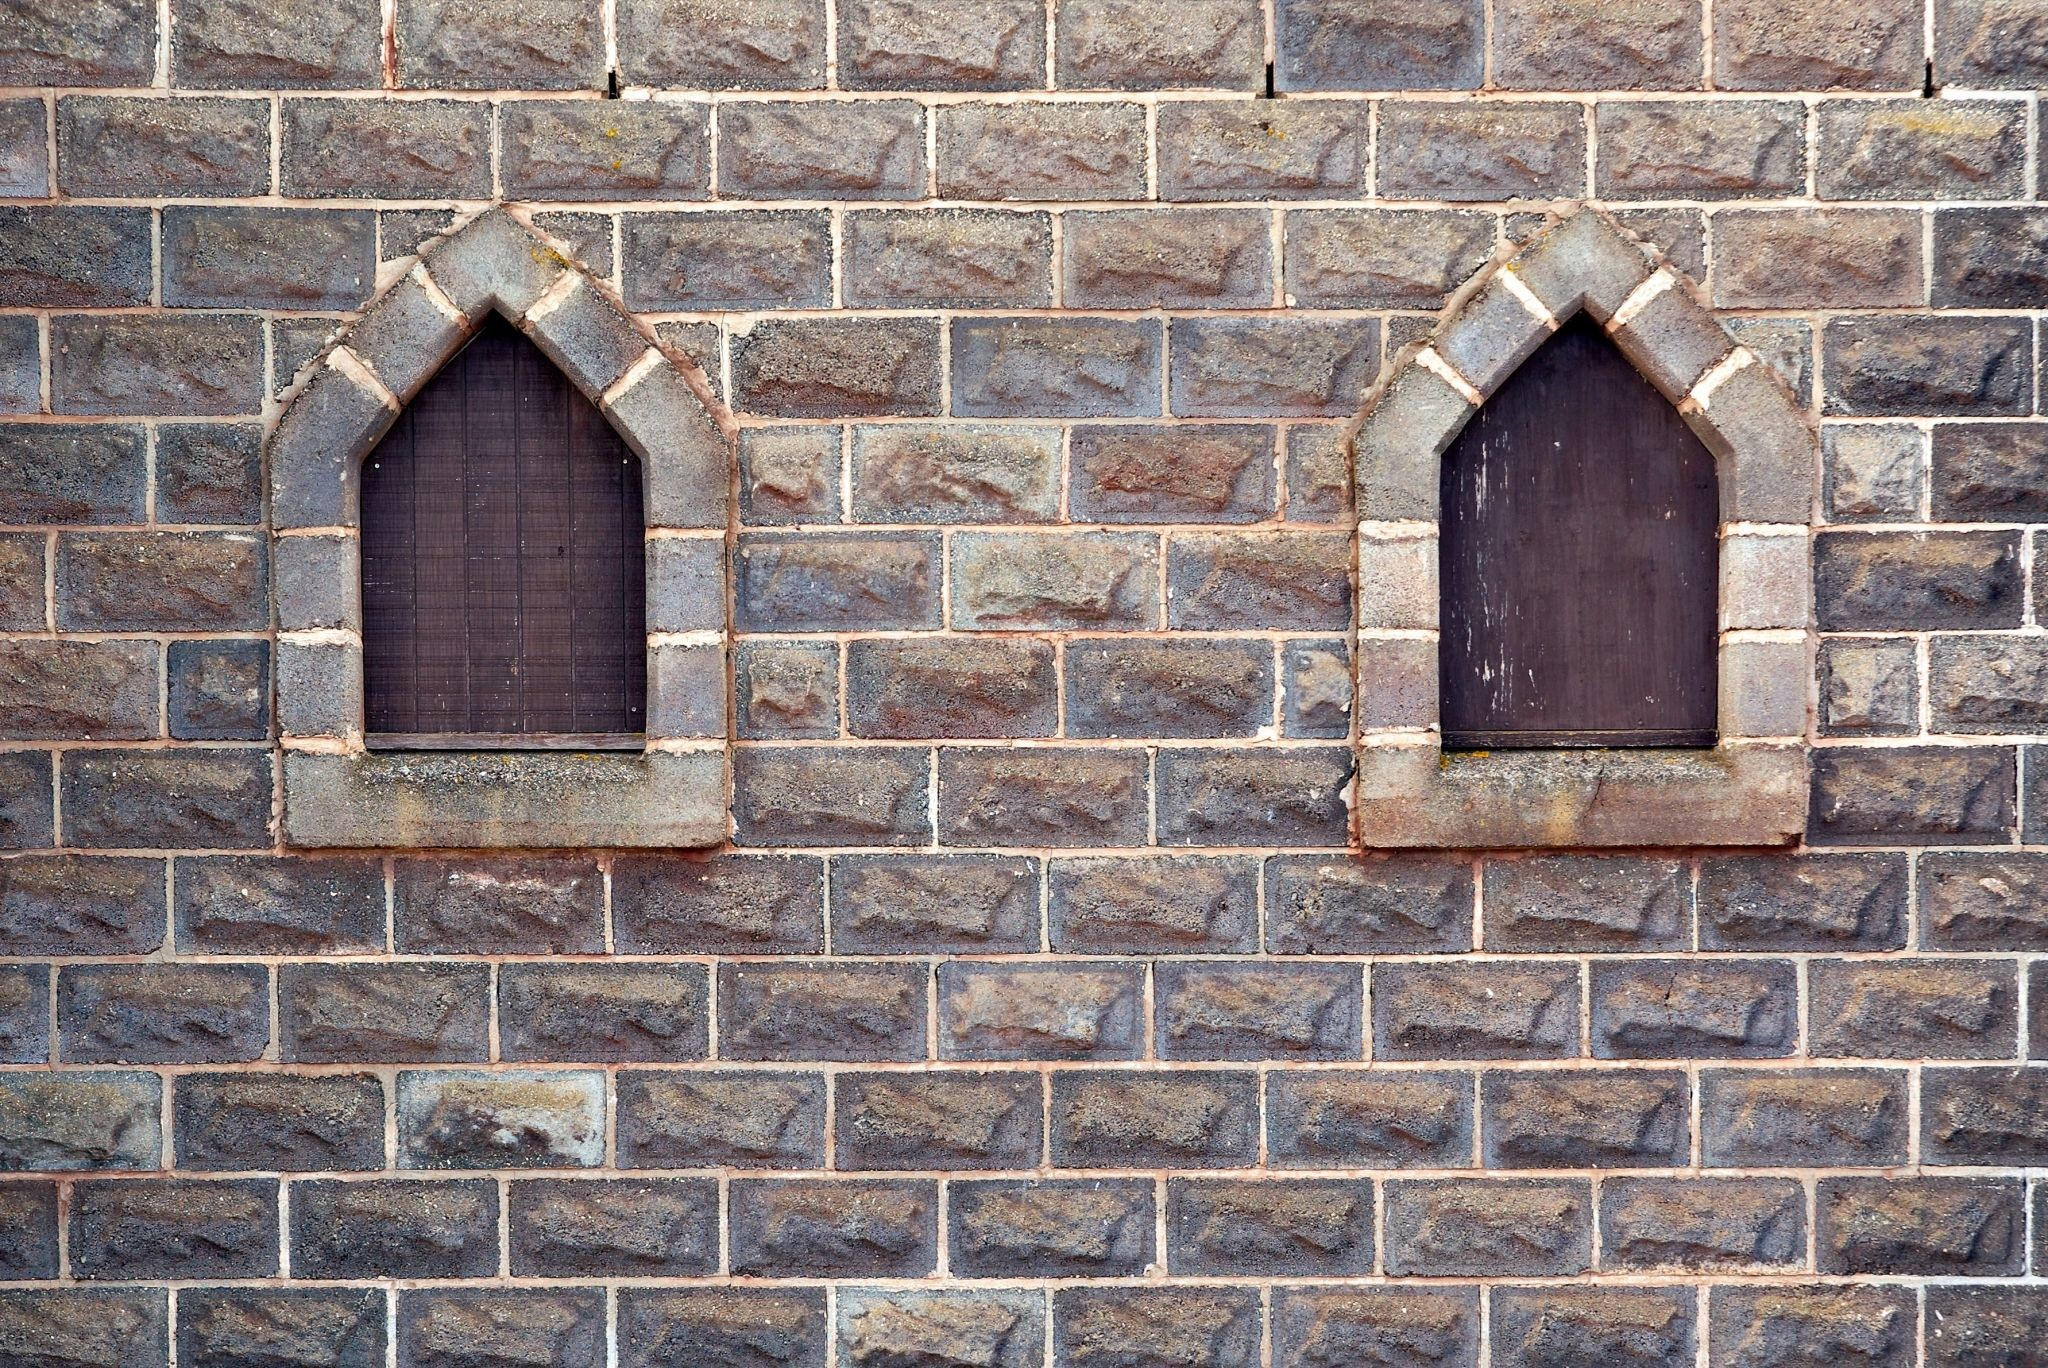 Res: 2048x1368, free castle windows in stone brick wall background photo Stone Brick Wall  of a castle with two wooden boarded windows